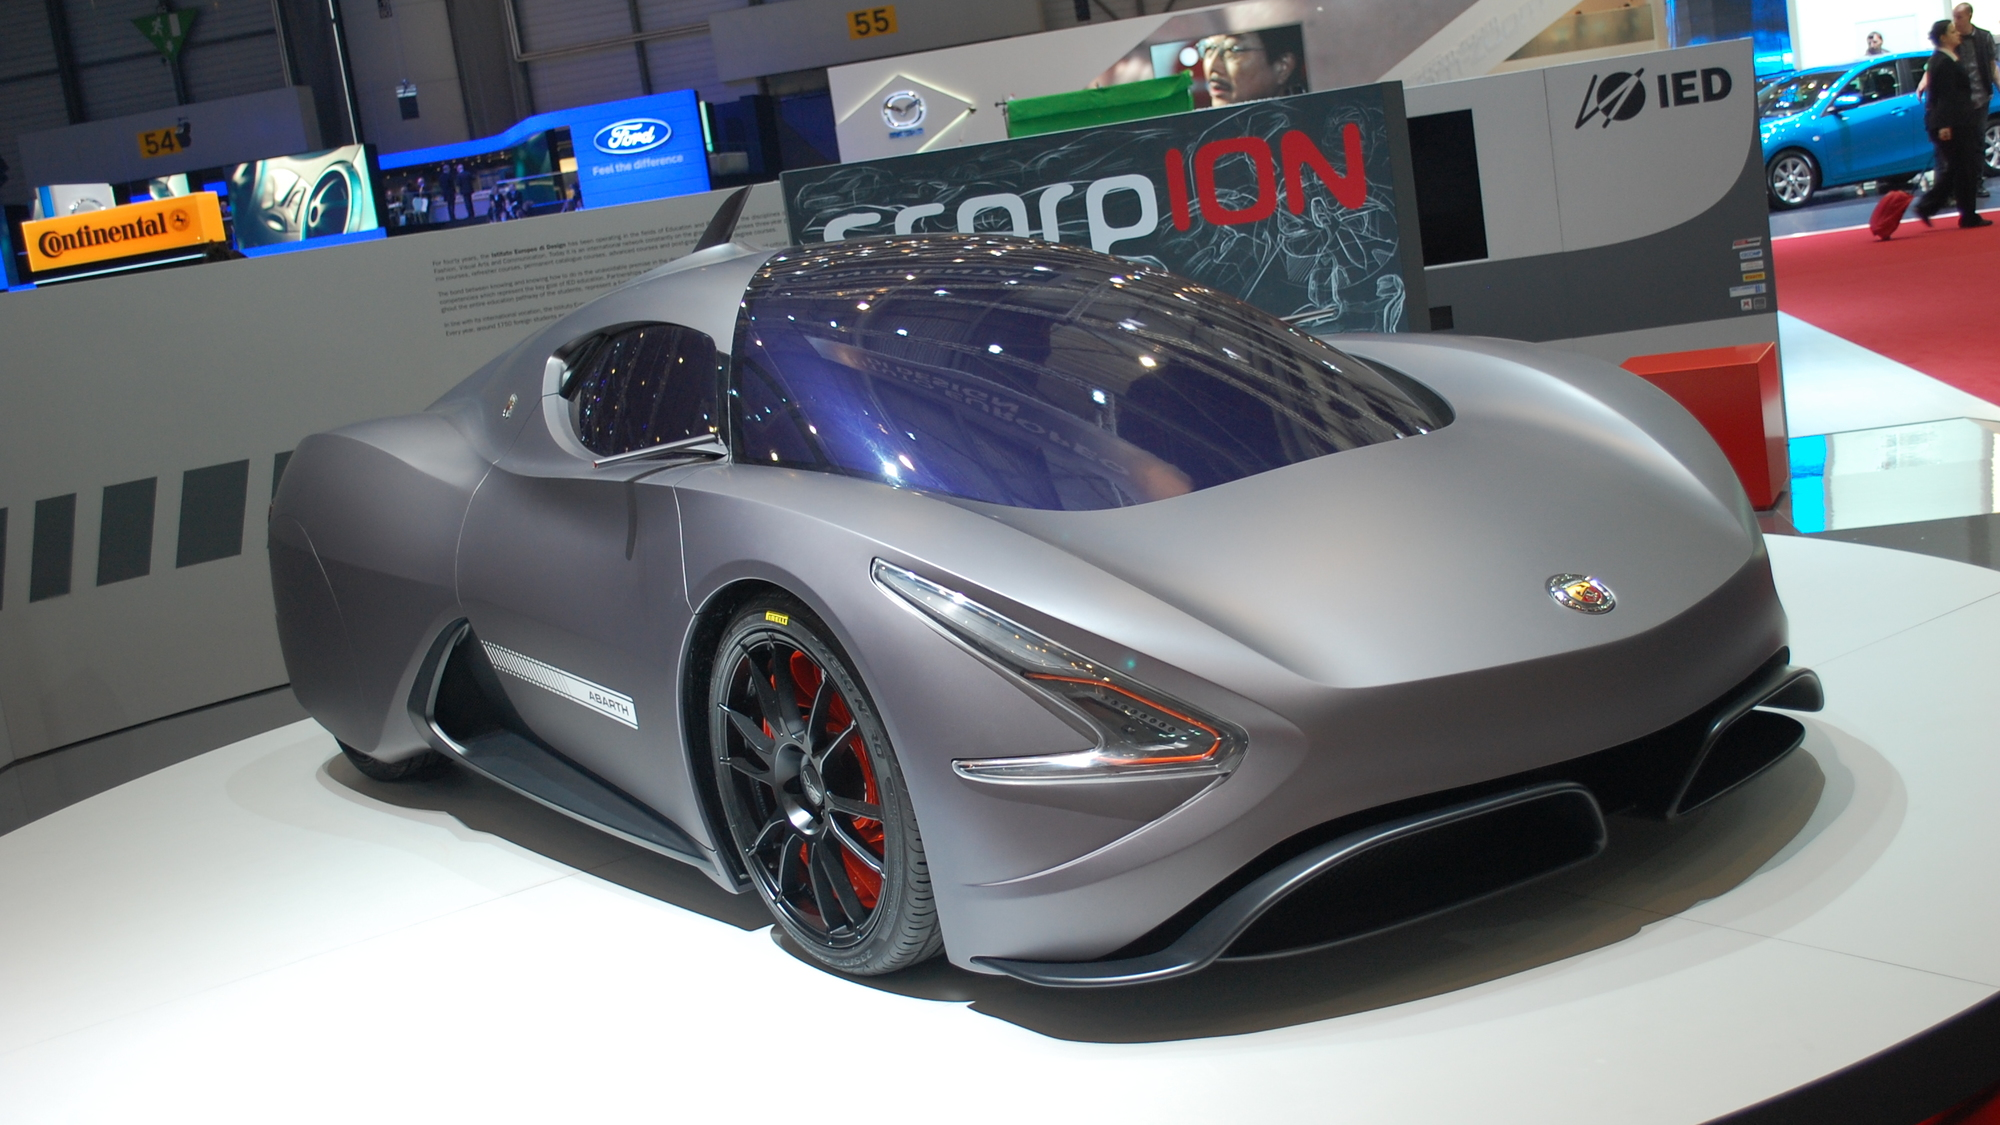 IED Abarth scorpION Concept